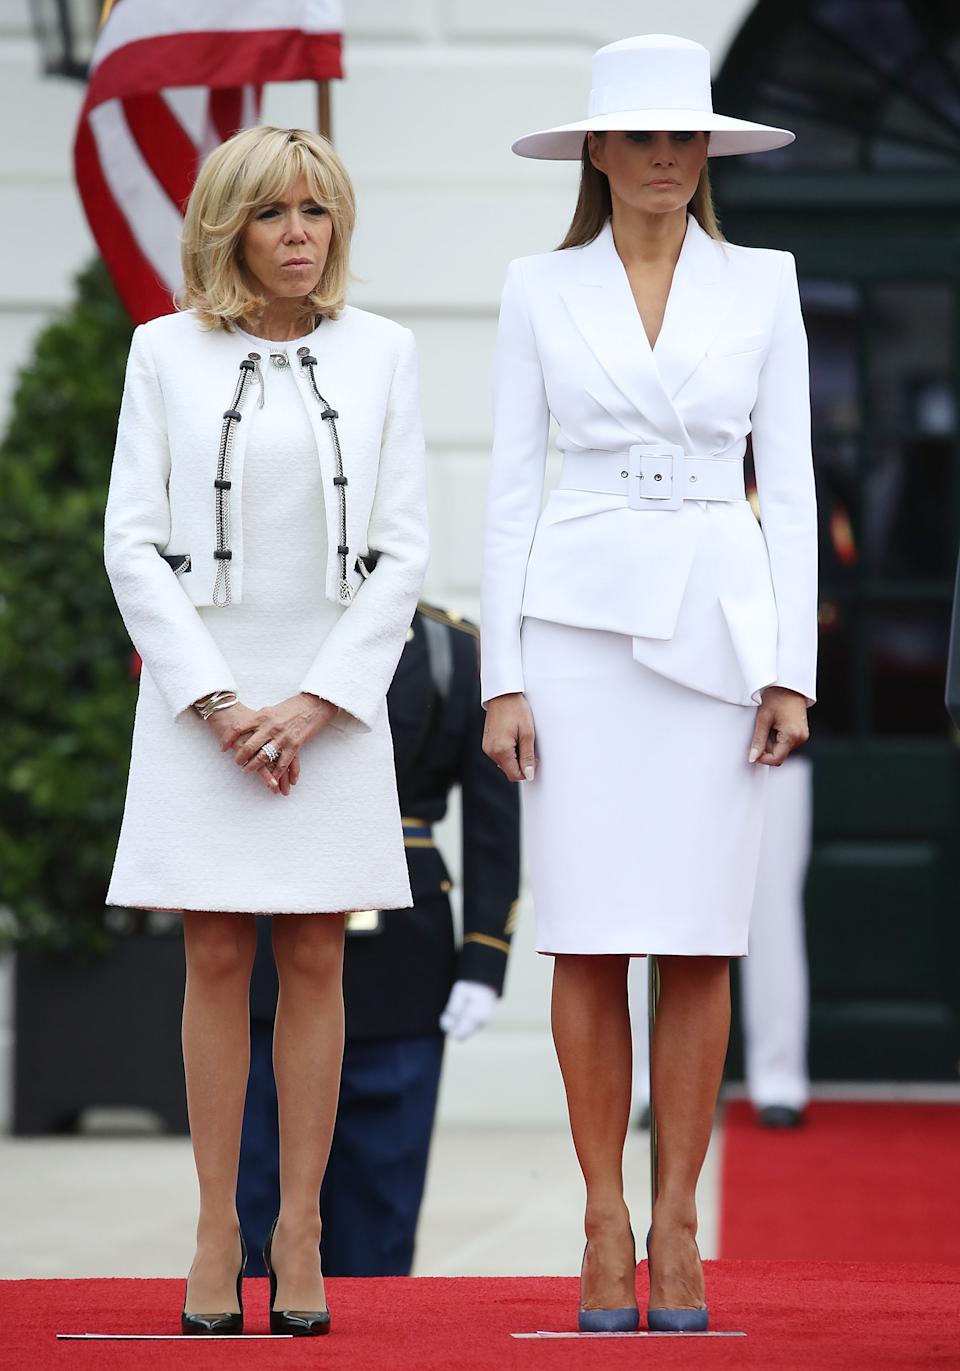 The First Lady was mocked online for wearing a wide-brimmed hat during the French state visit in April 2018 [Photo: Getty]